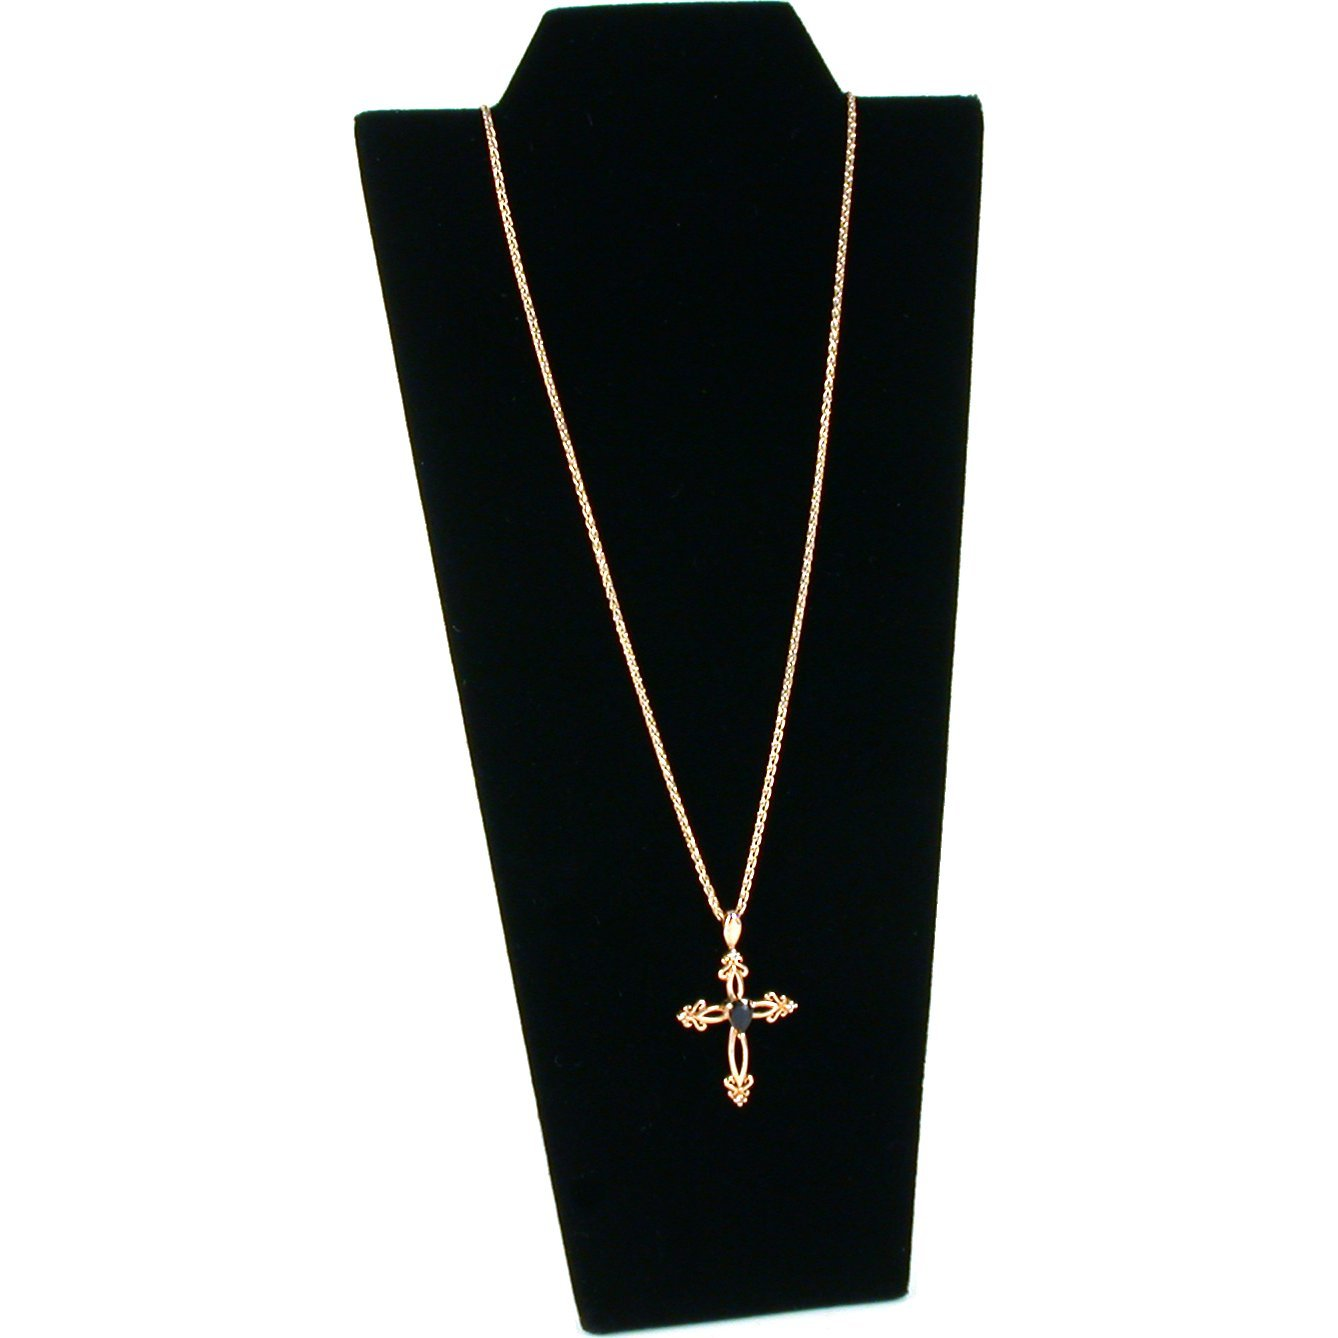 Black Velvet Chain Necklace Easel Display Jewelry Bust